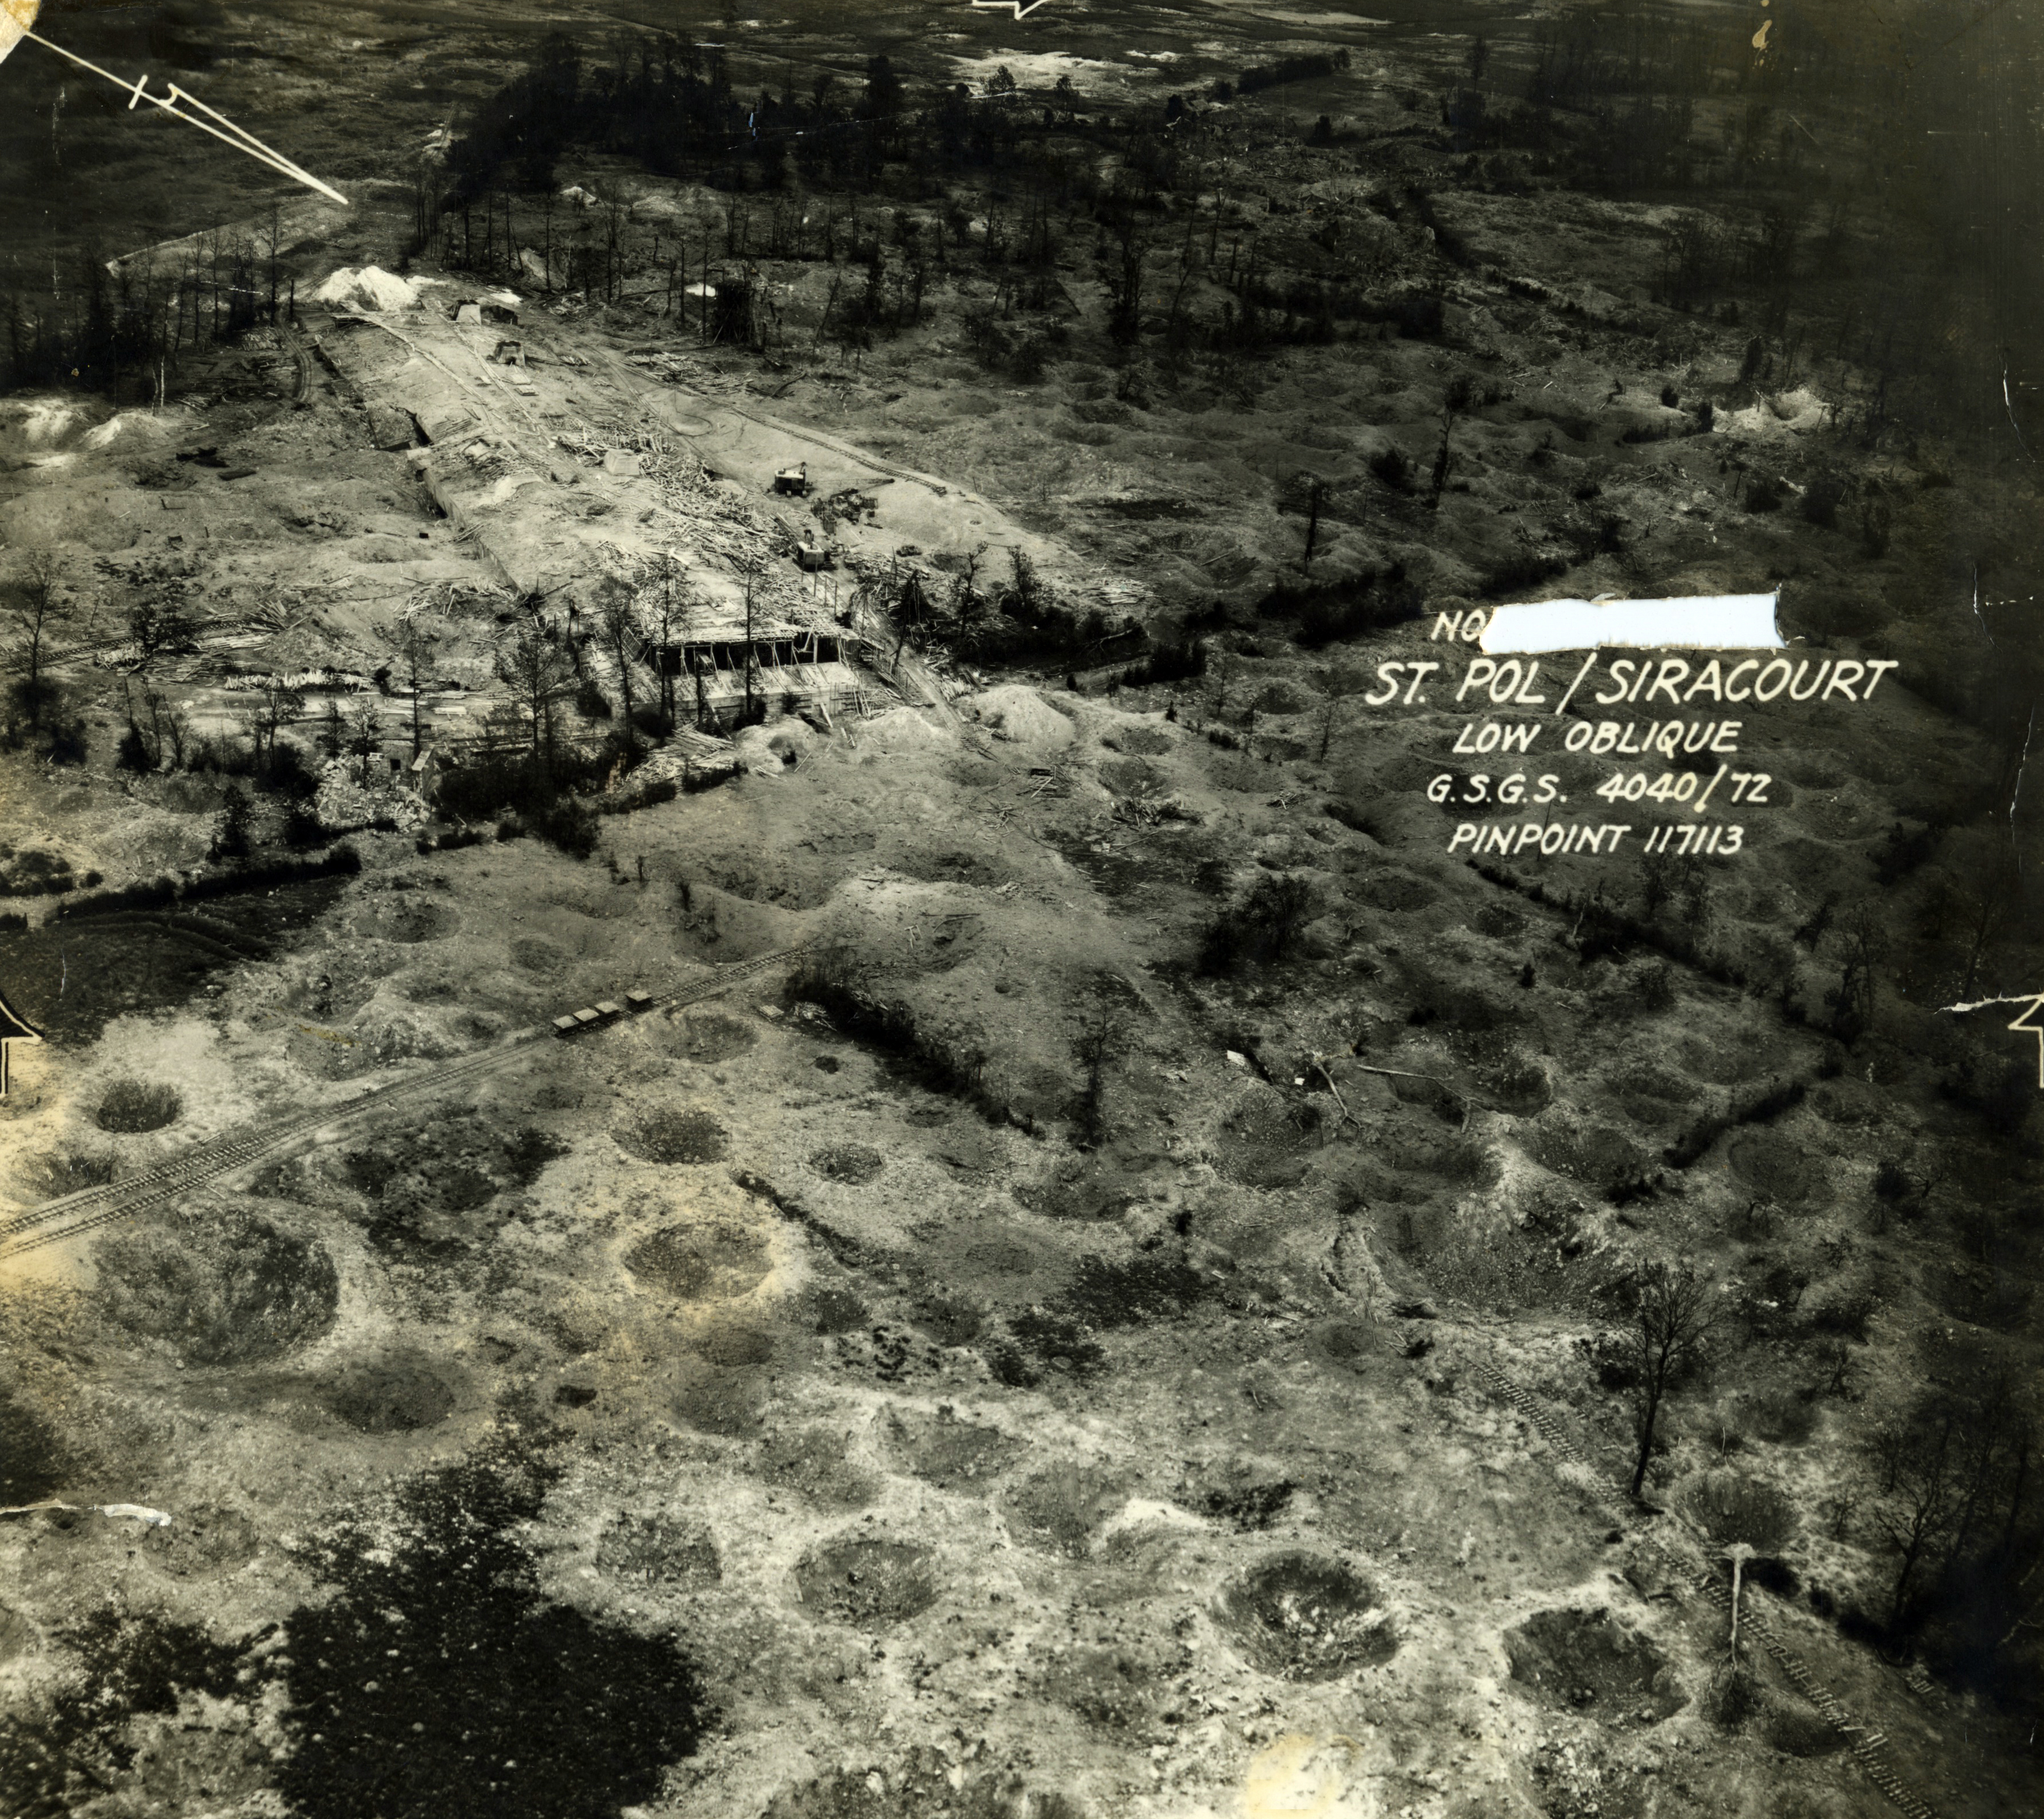 USAAAF 7PG22FS aerial recon photo to St Pol Siracourt V Weapons Noball France July 7 1944 01